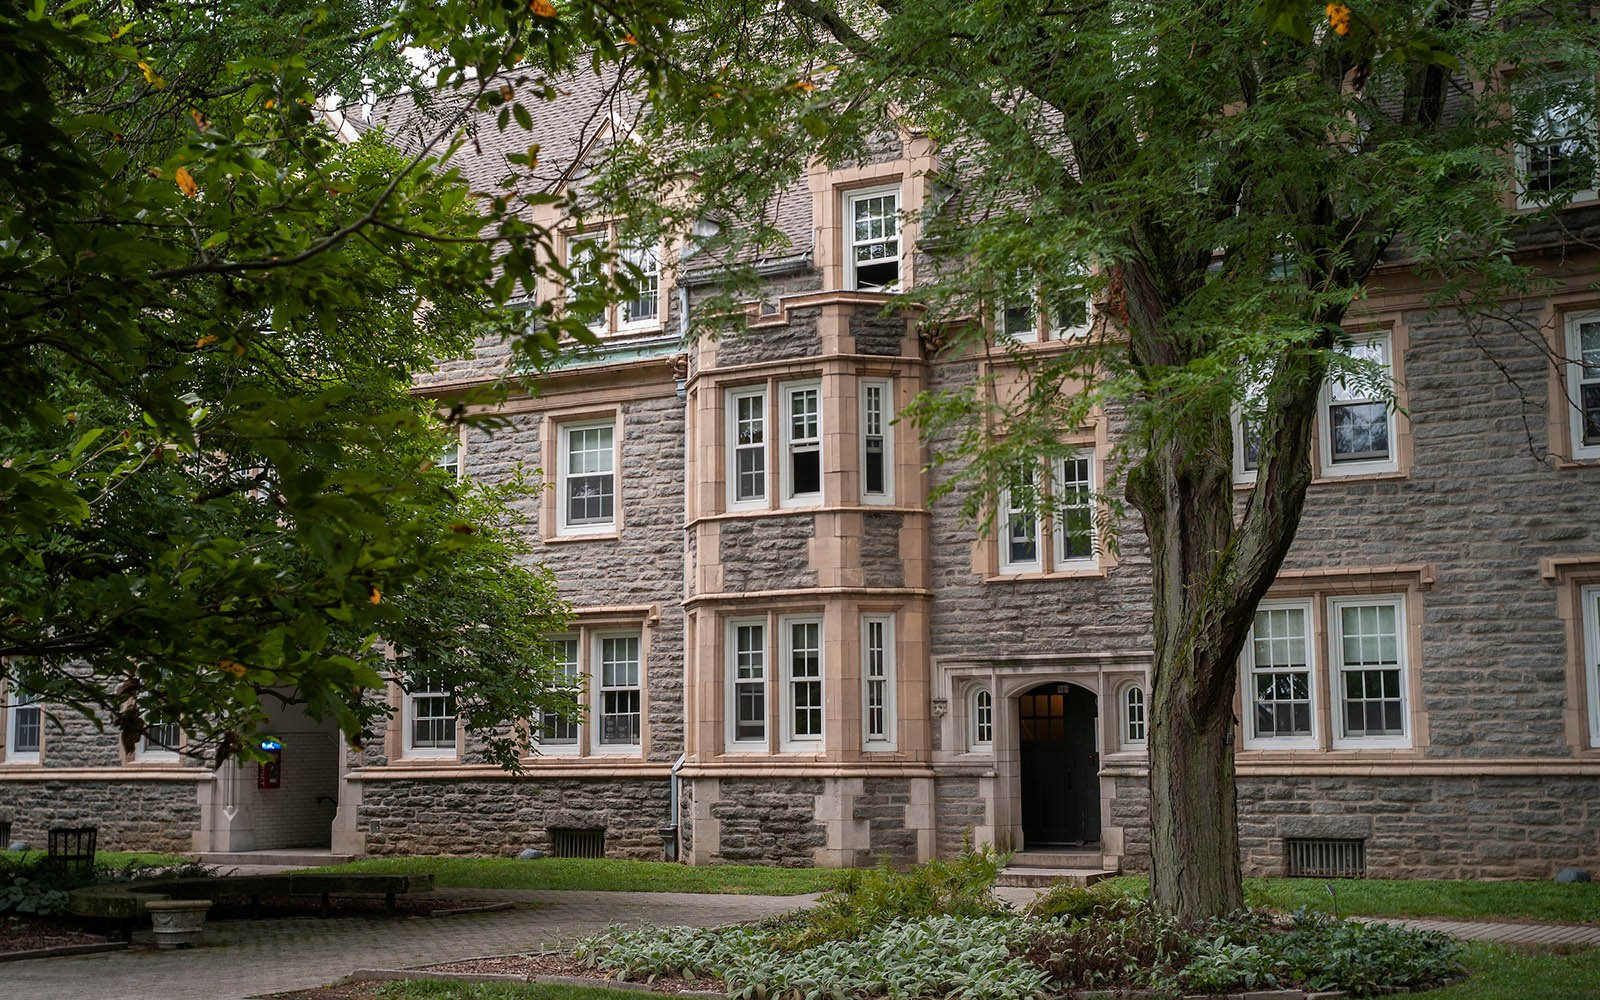 Exterior shot of Wharton Hall with trees in foreground